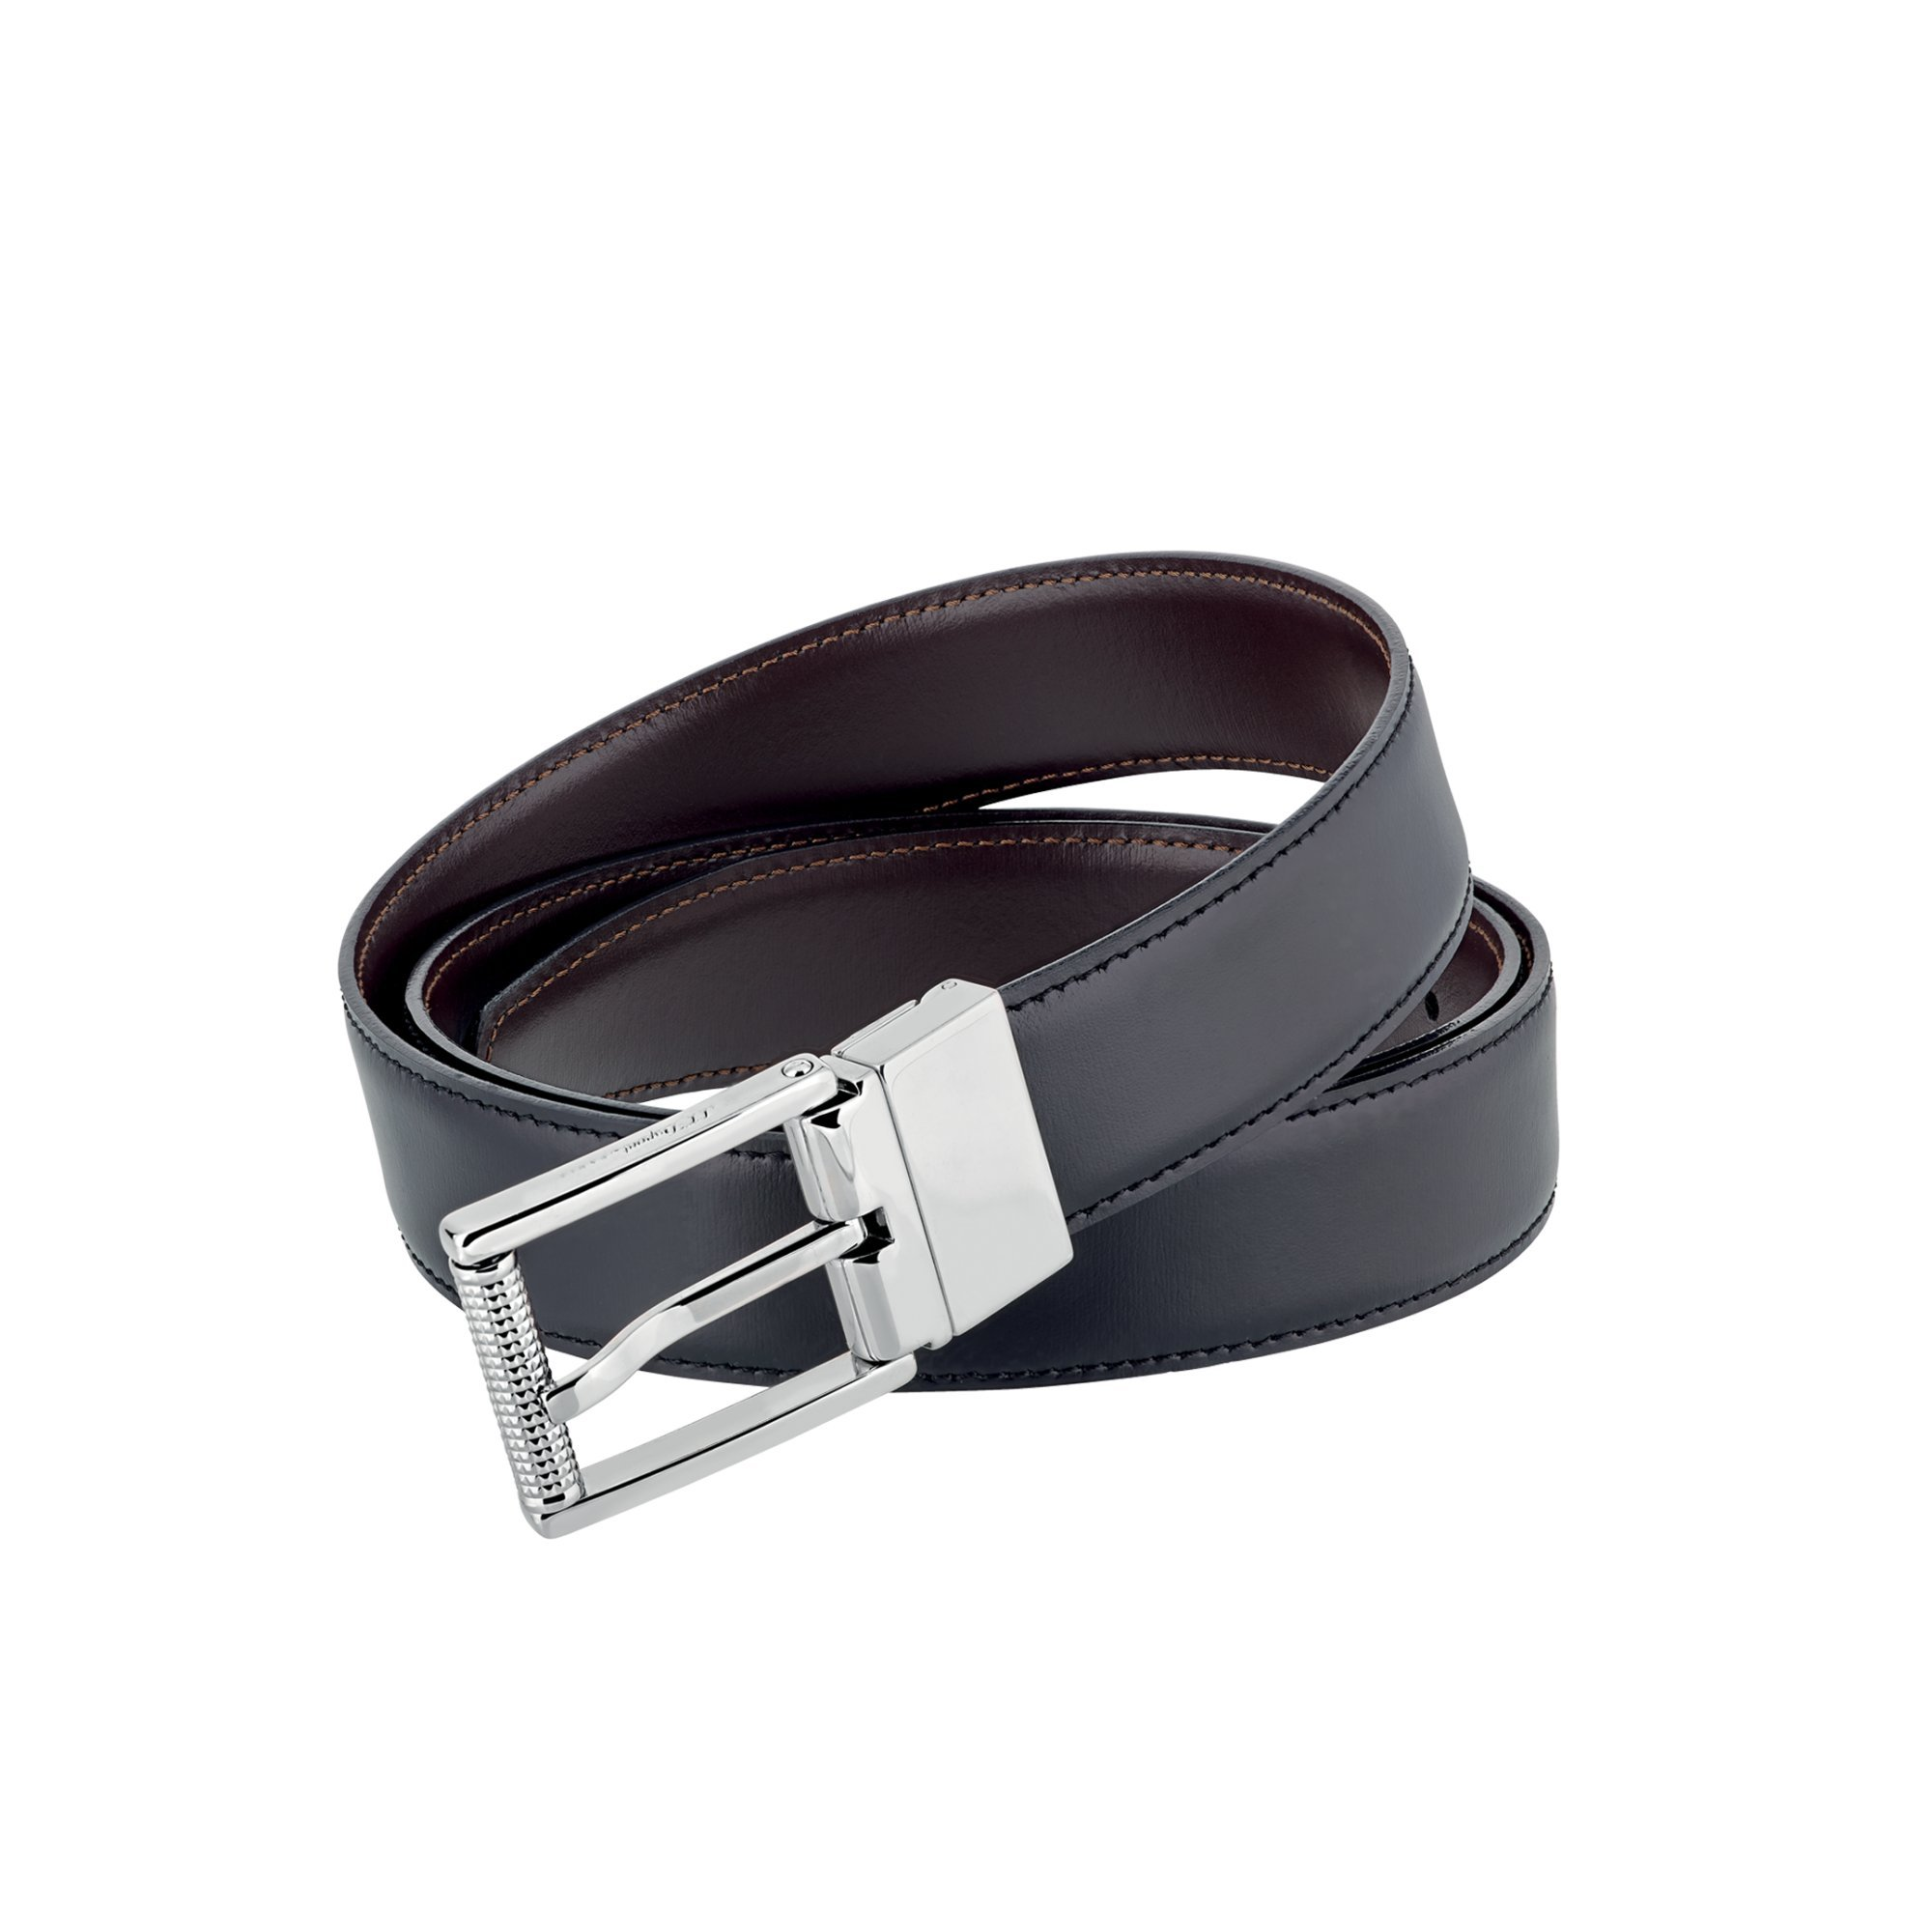 S.T. Dupont 9550120 Palladium Finish Auto-Reversible Business Belt